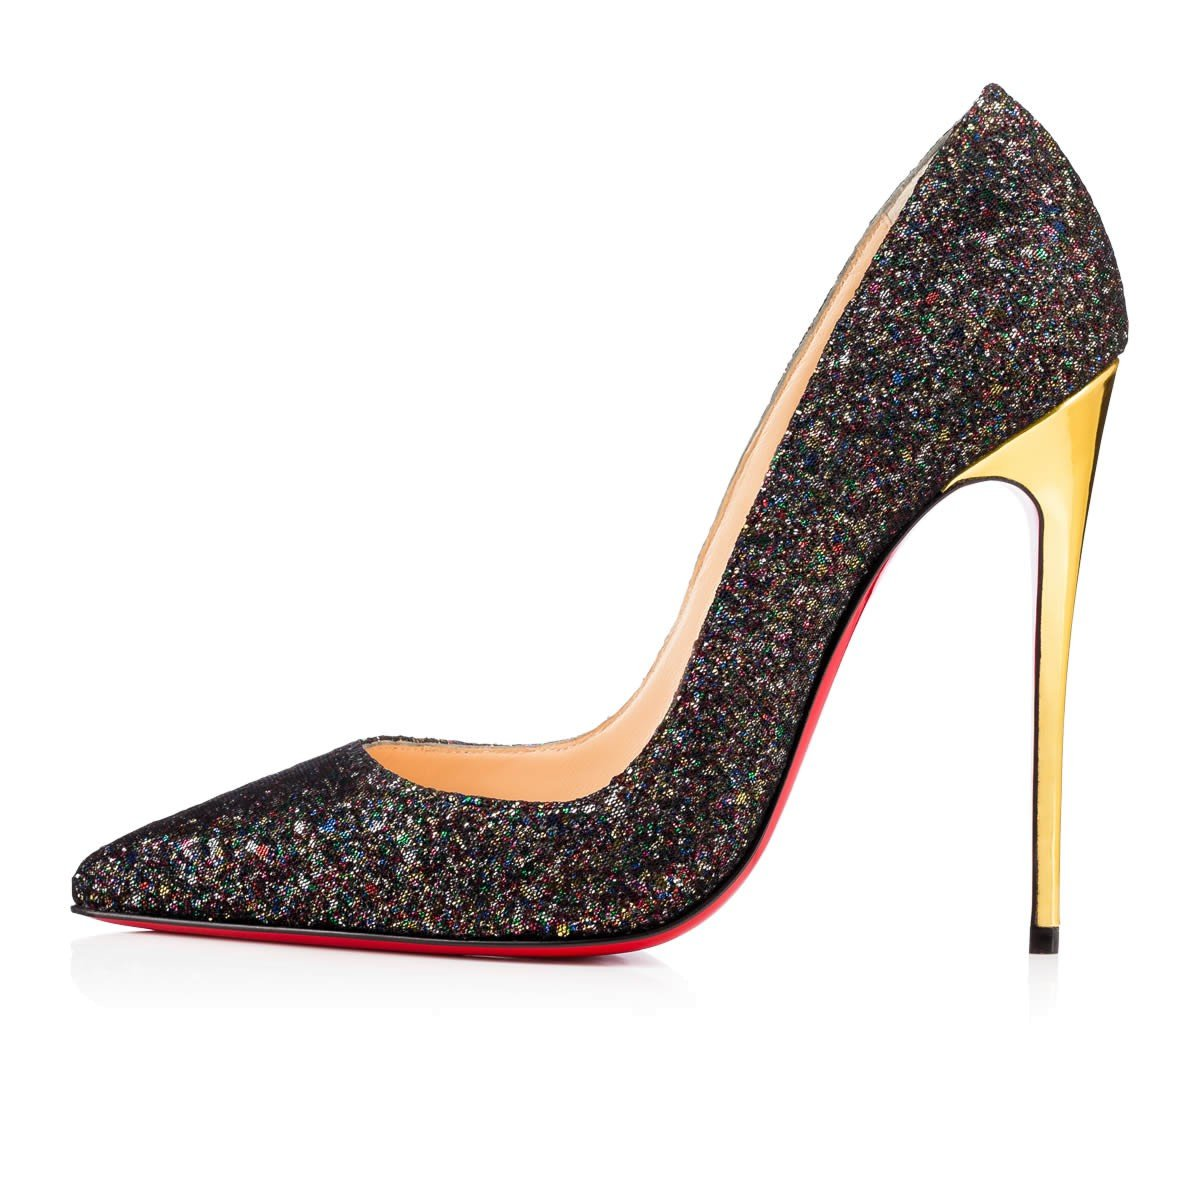 fake mens shoes christian louboutin - Christian Louboutin So Kate | Shop Women's Christian Louboutin So ...